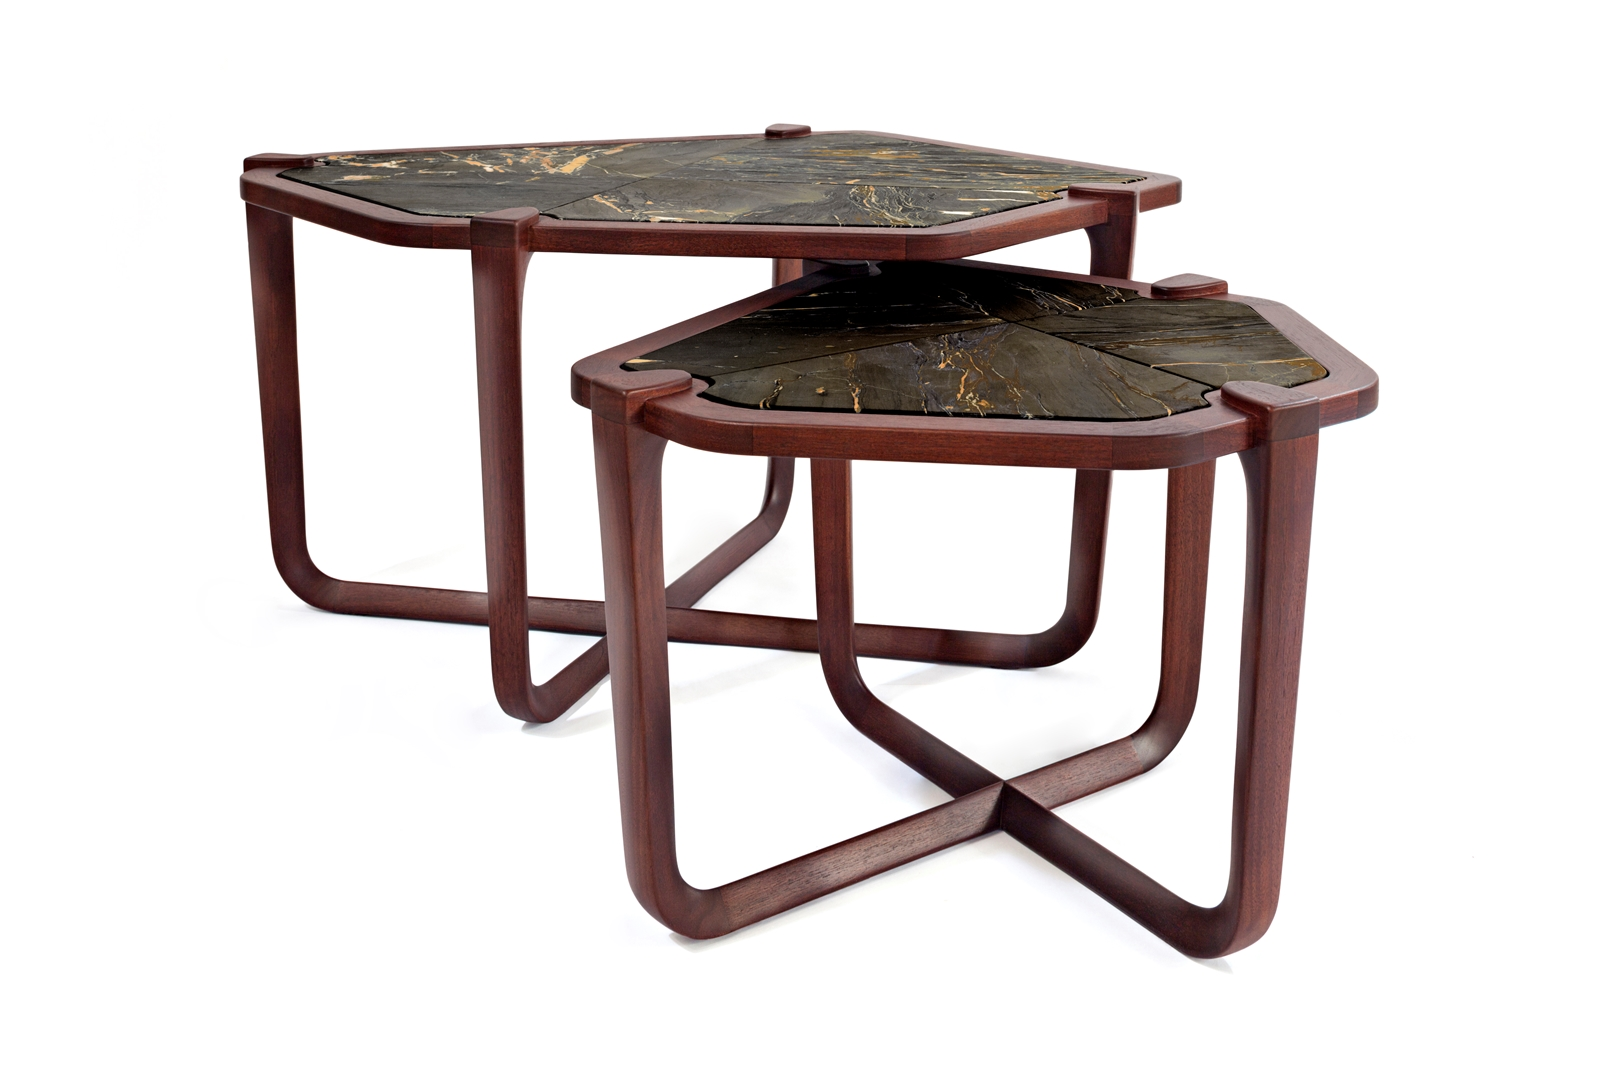 Christopher Jenner Nest Table © Michael Franke 8 (Copy)